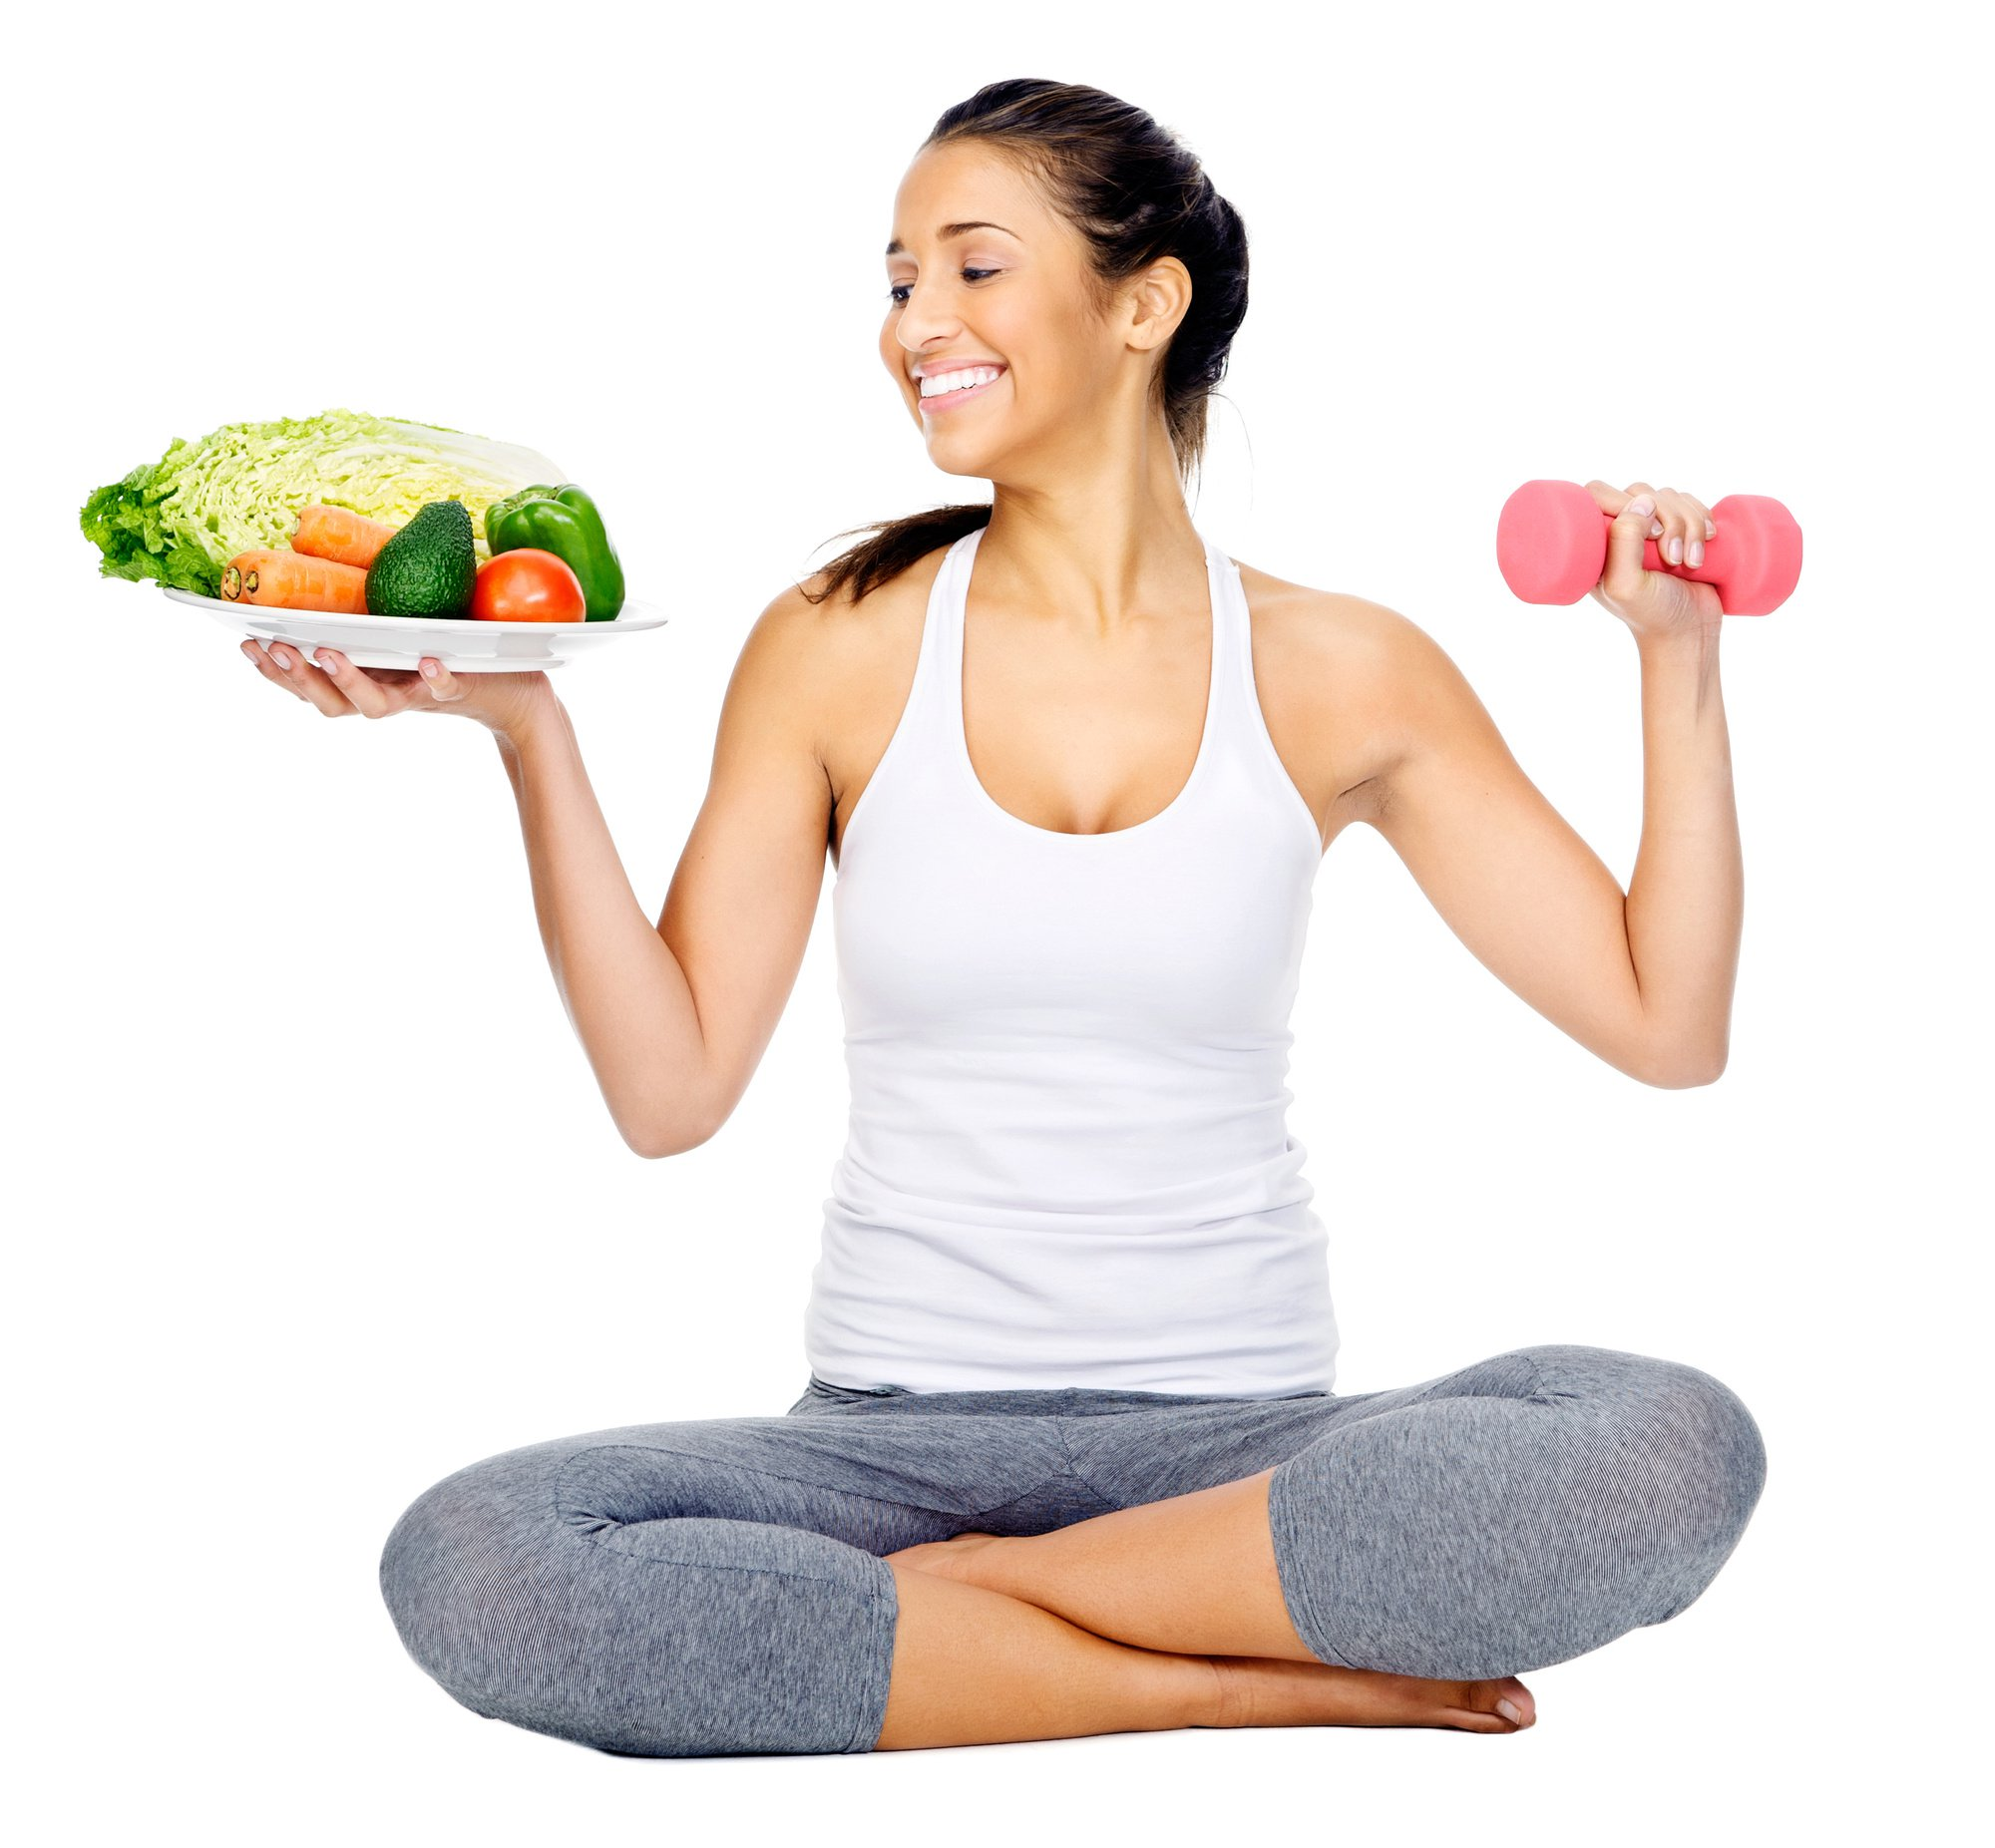 Exercise Vst Why Your Nutrition Is The Biggest Player